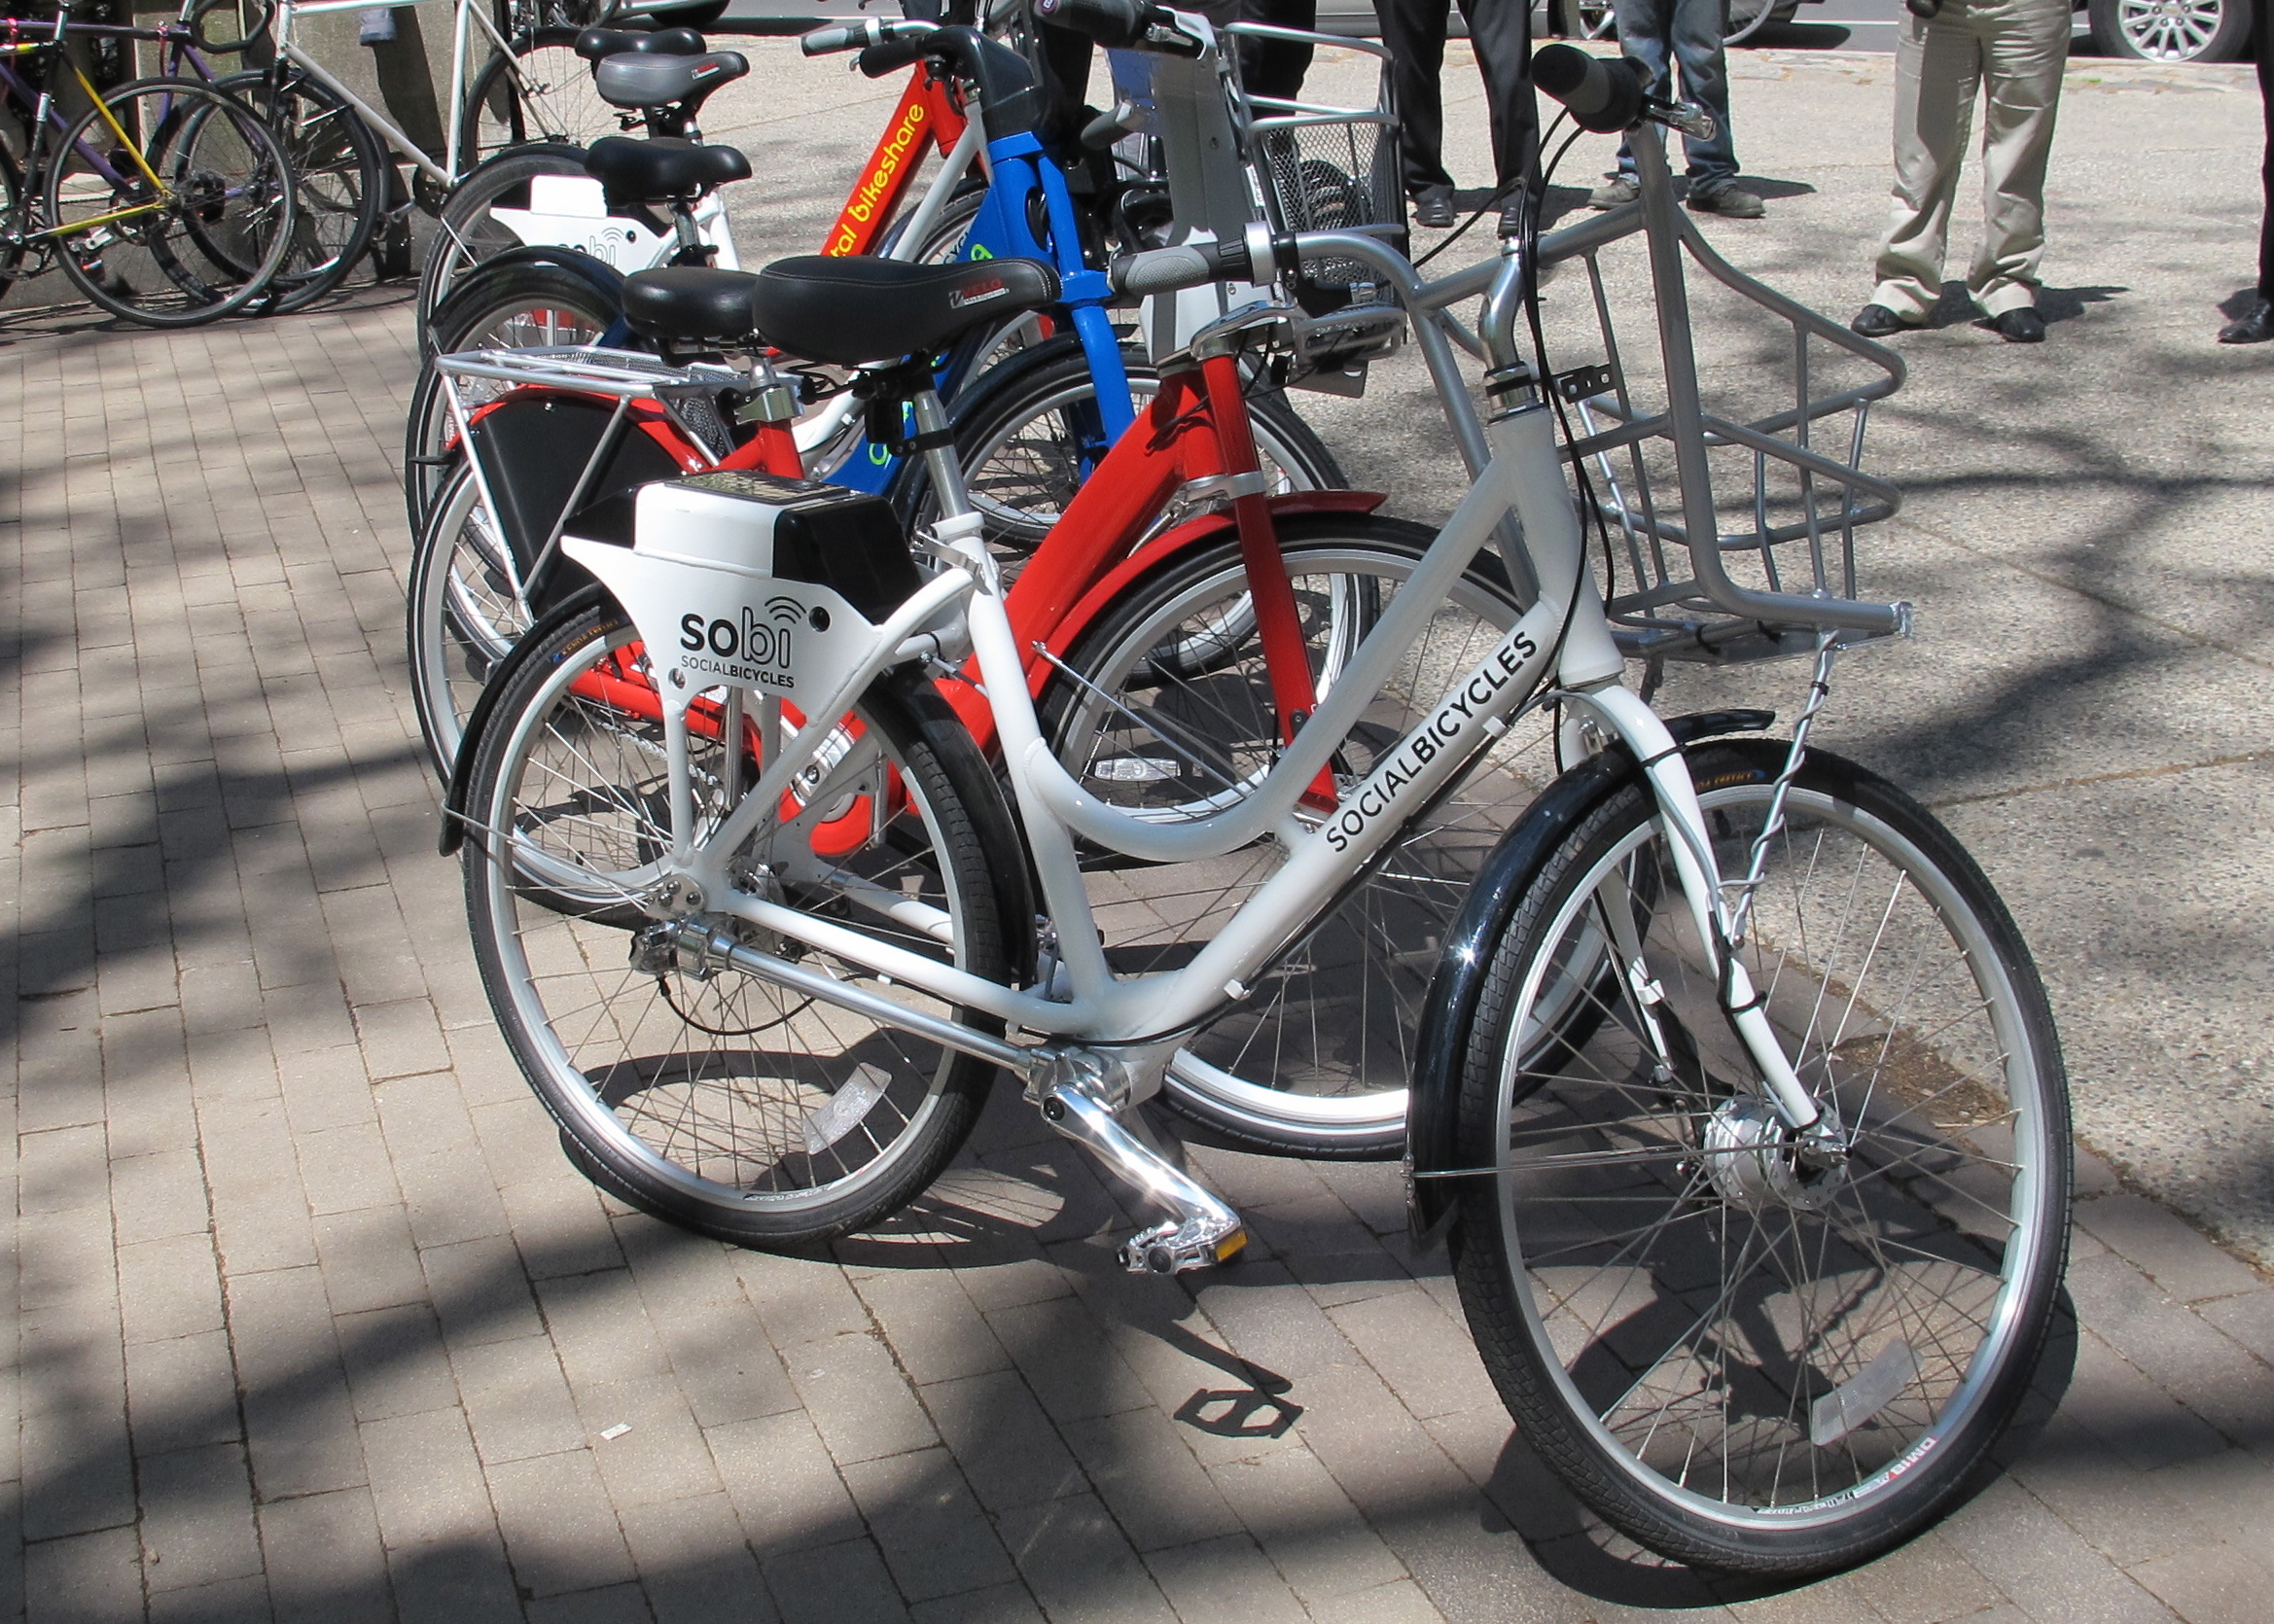 A Social Bicycle model